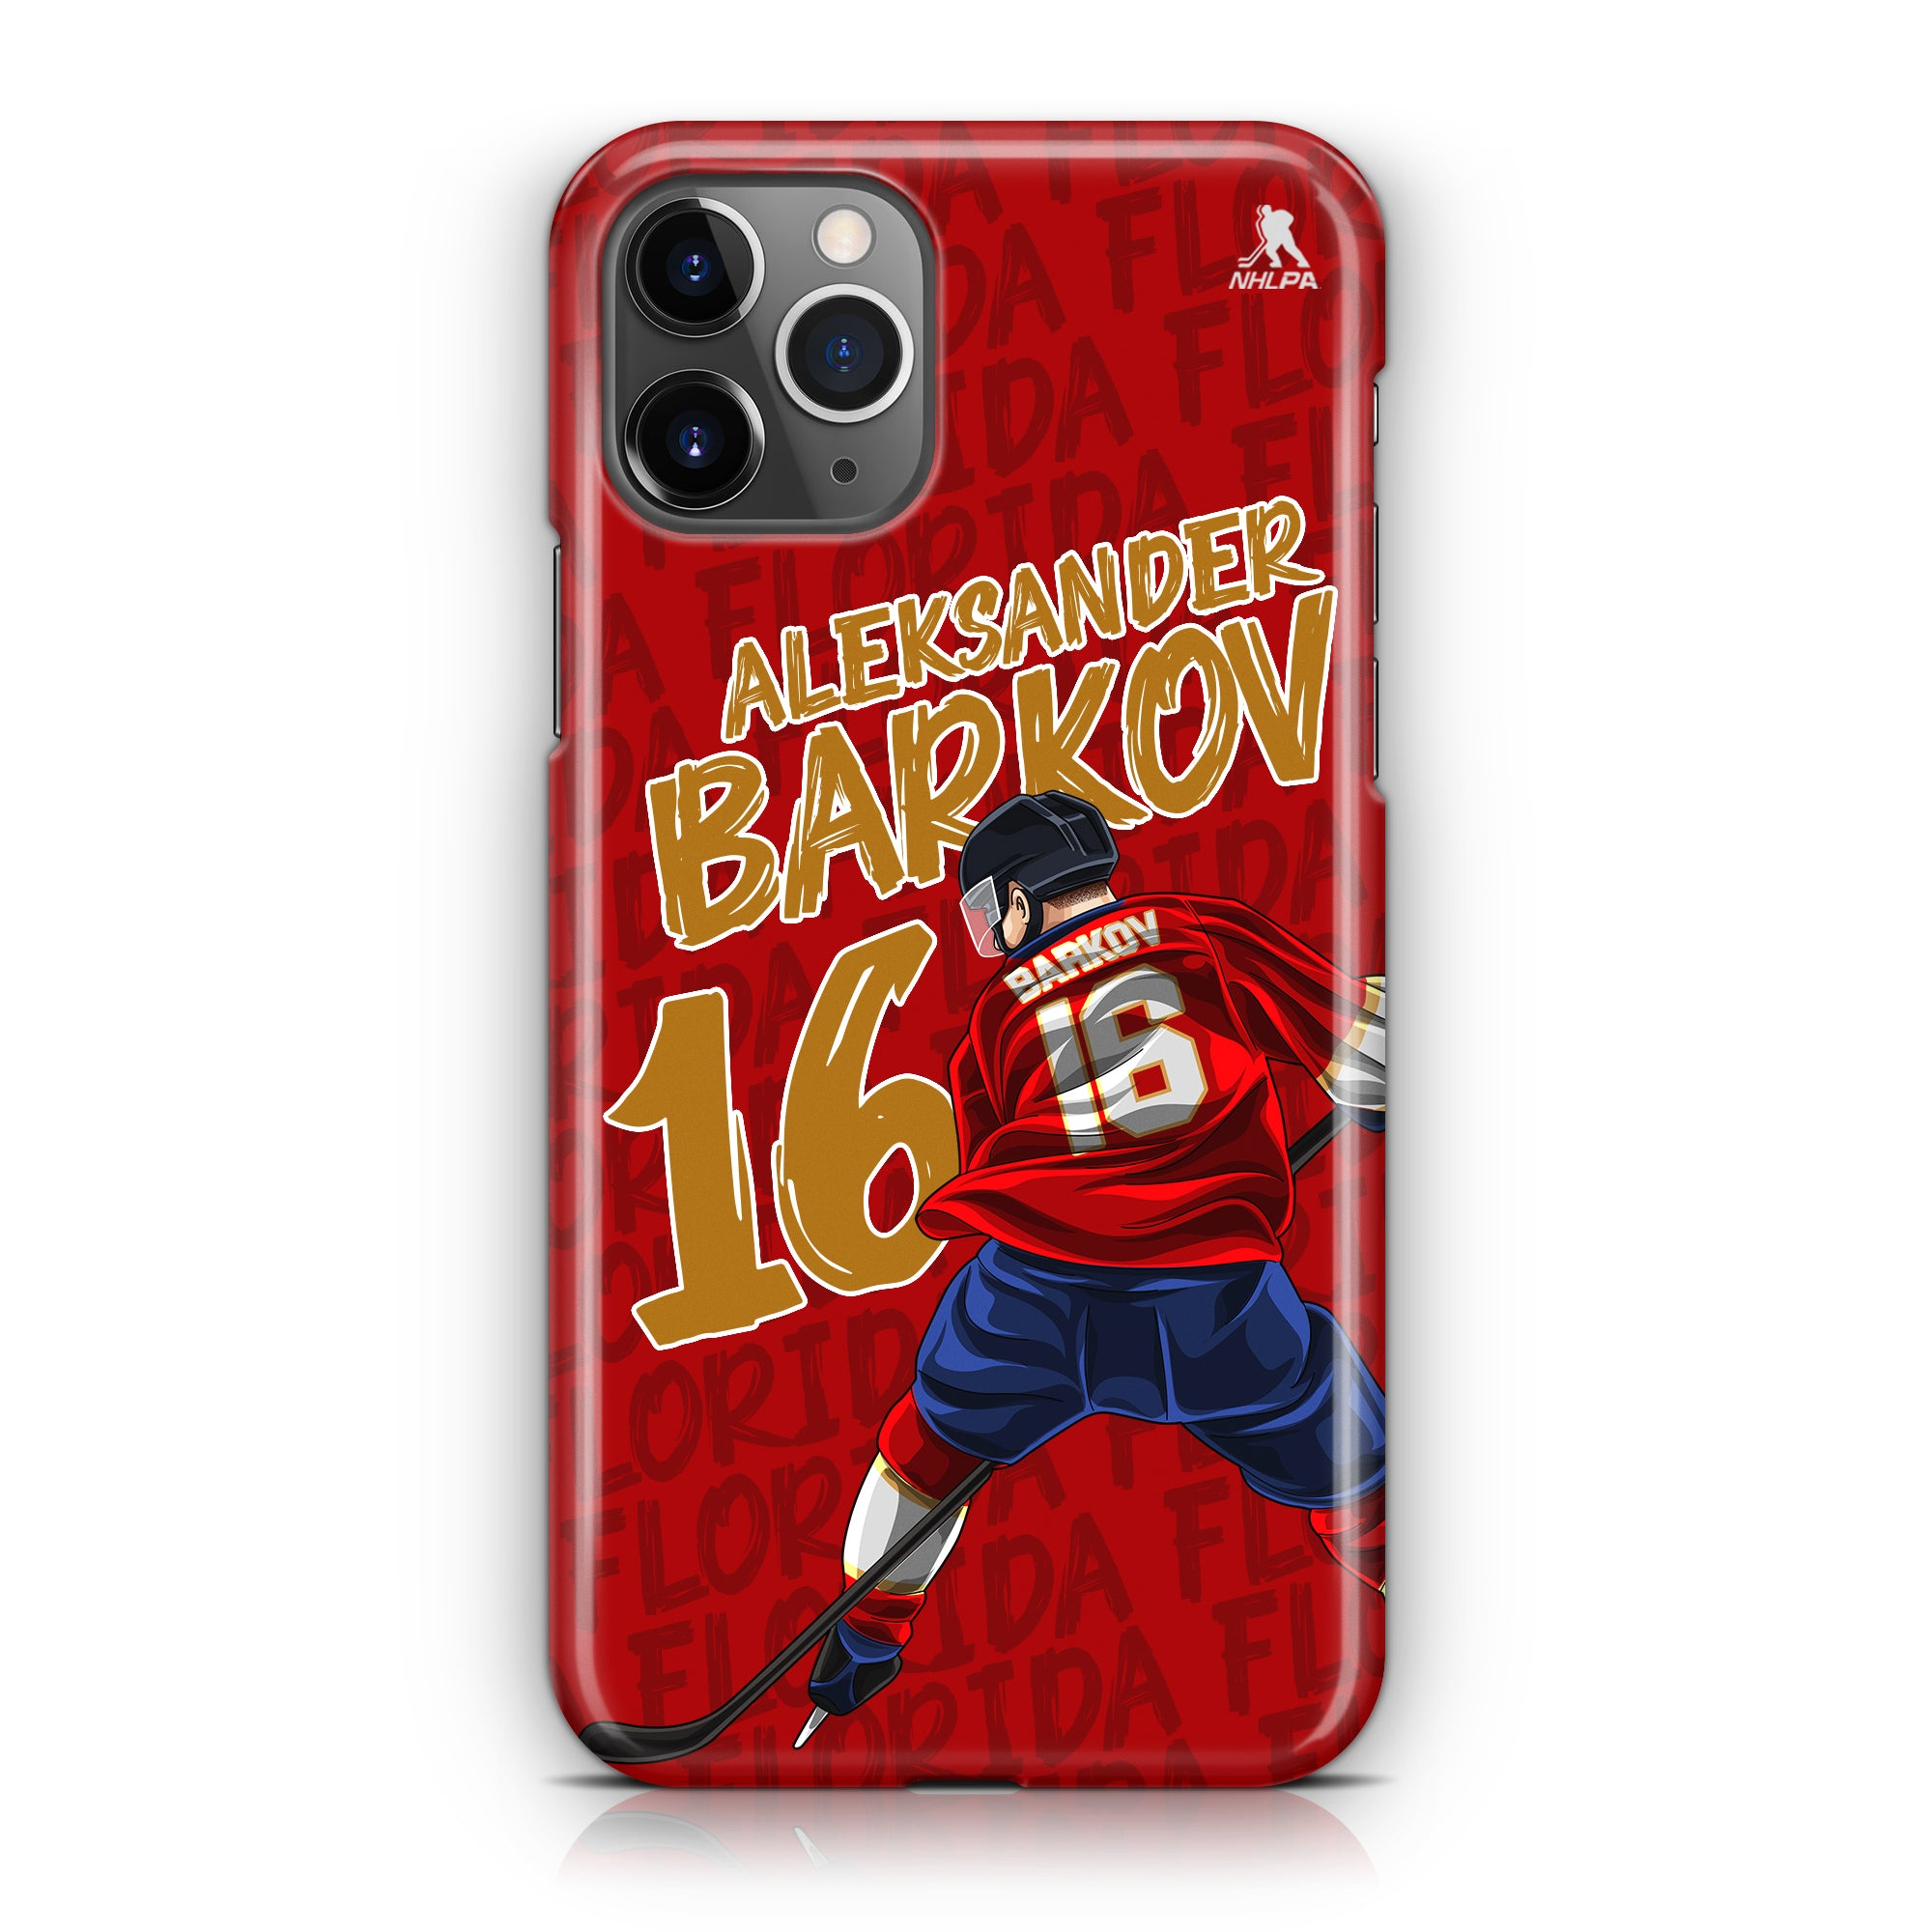 Barkov Star Series 2.0 Case